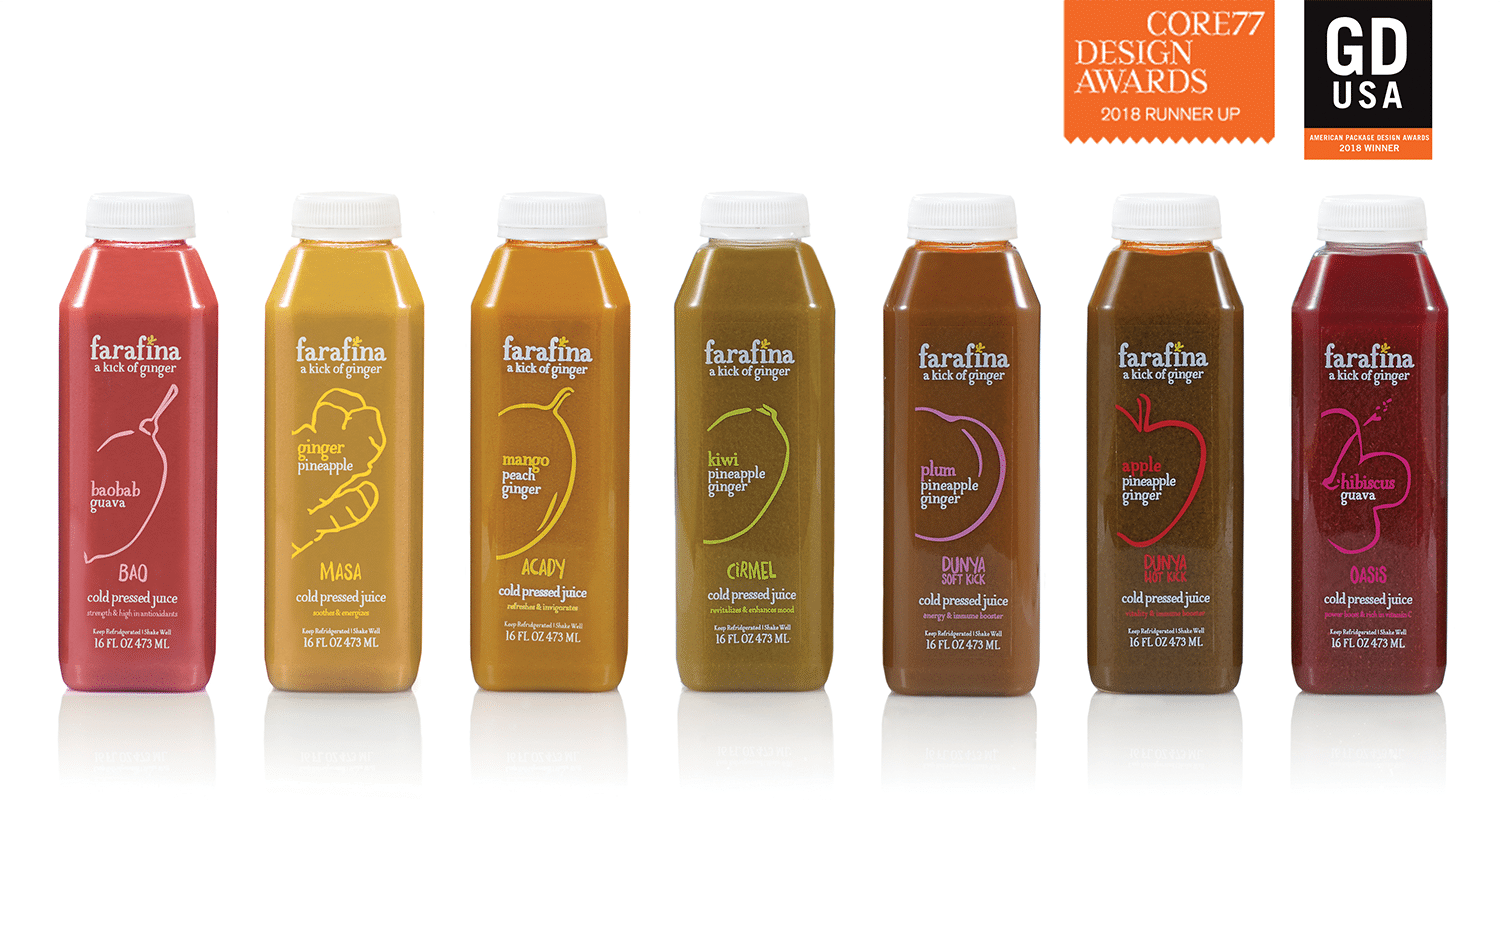 Core 77 Package Design Award for Farafina juices